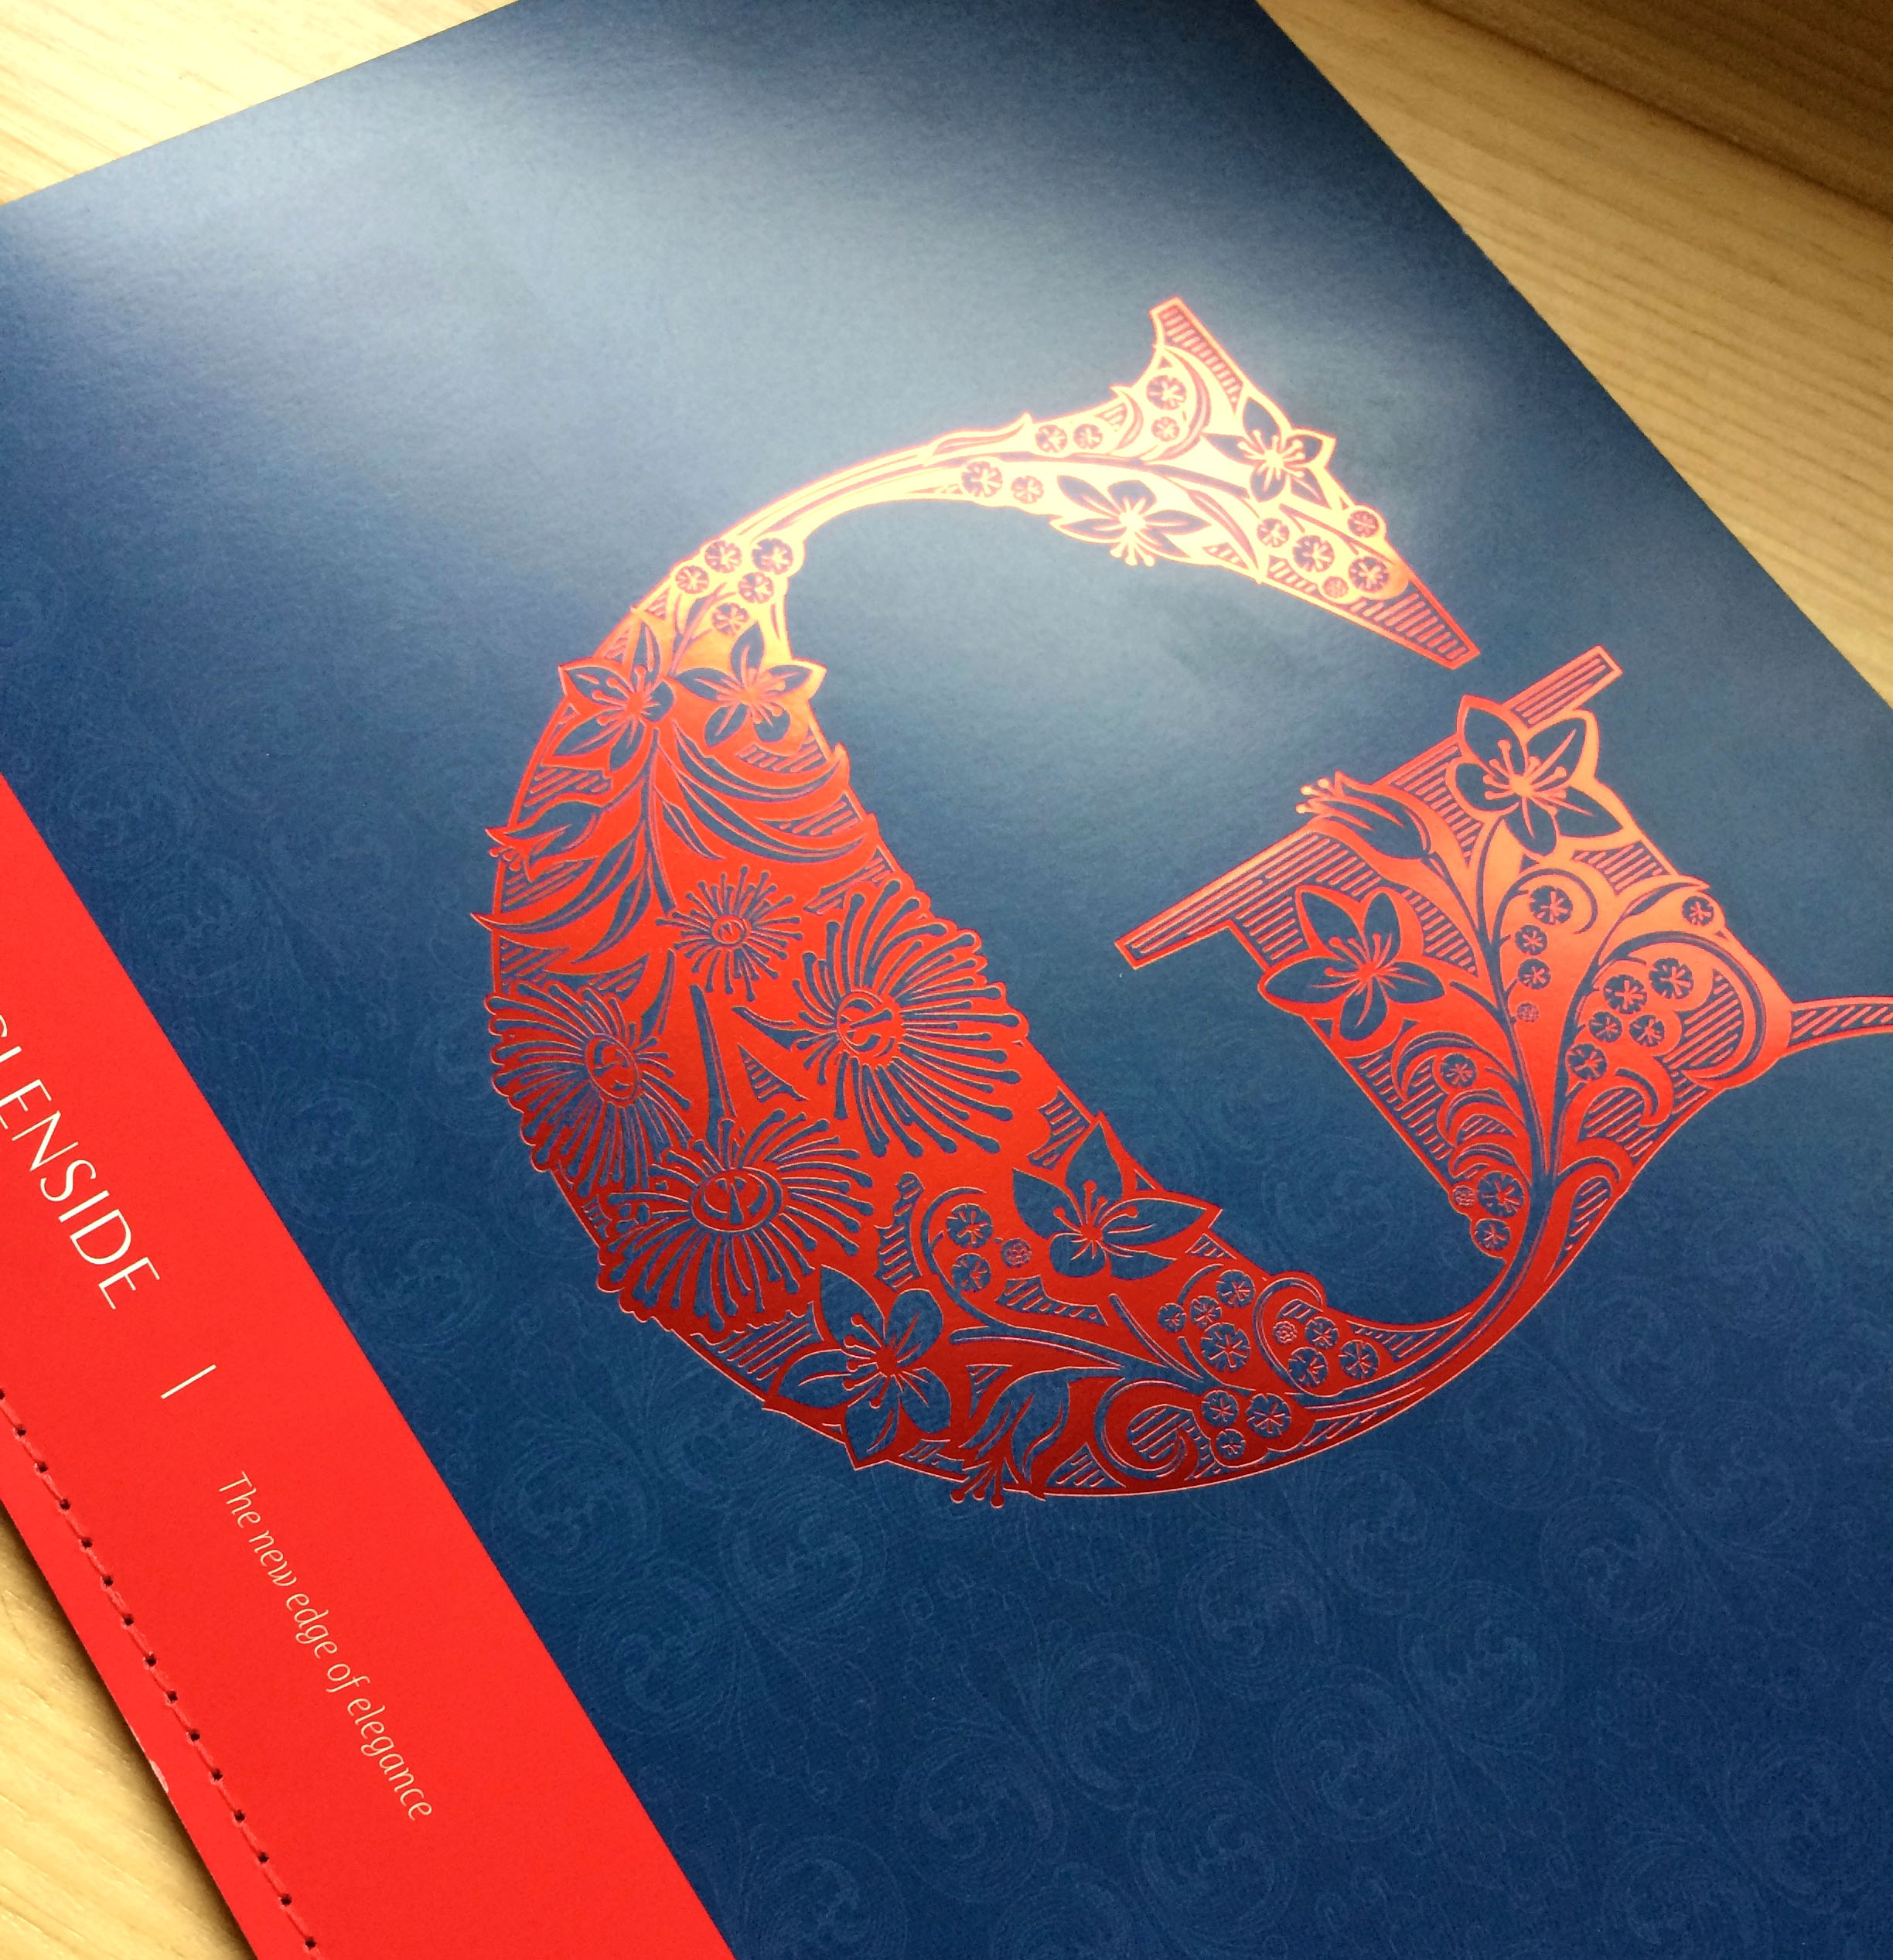 A few examples of the fantastic identity work from Martins Brand House using the motif.